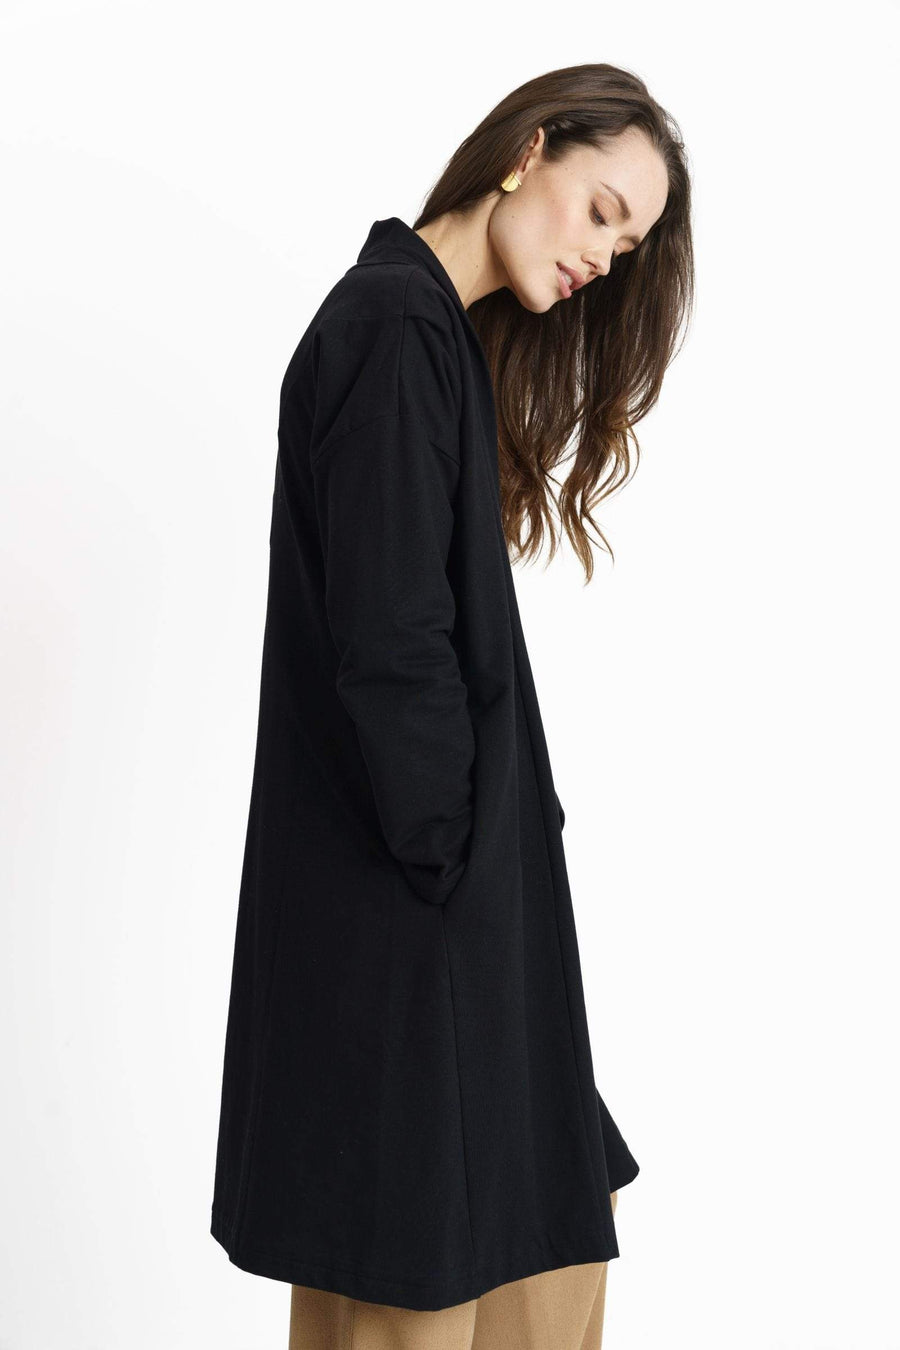 SHIPSHEIP coat Eileen Coat. Organic Cotton. sustainable fashion ethical fashion